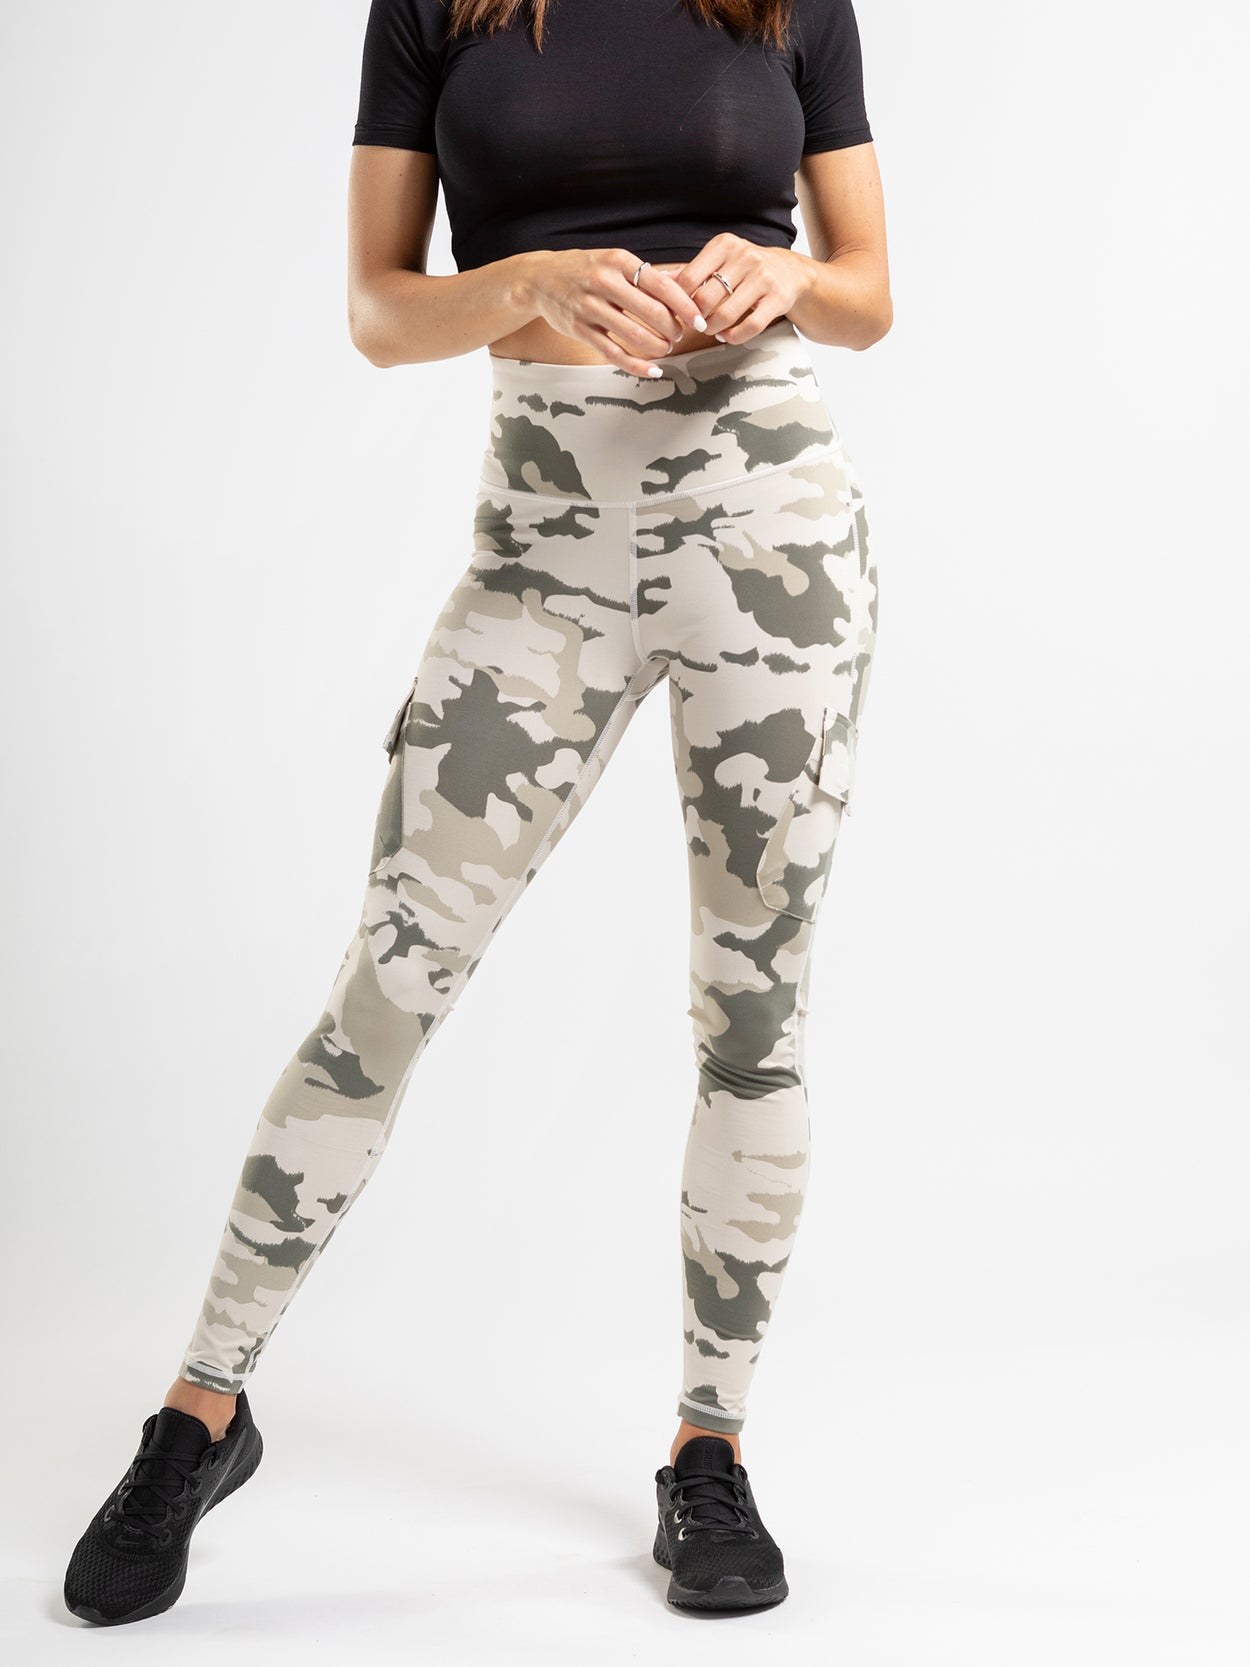 Camouflage print cargo leggings with side pockets and a high rise.